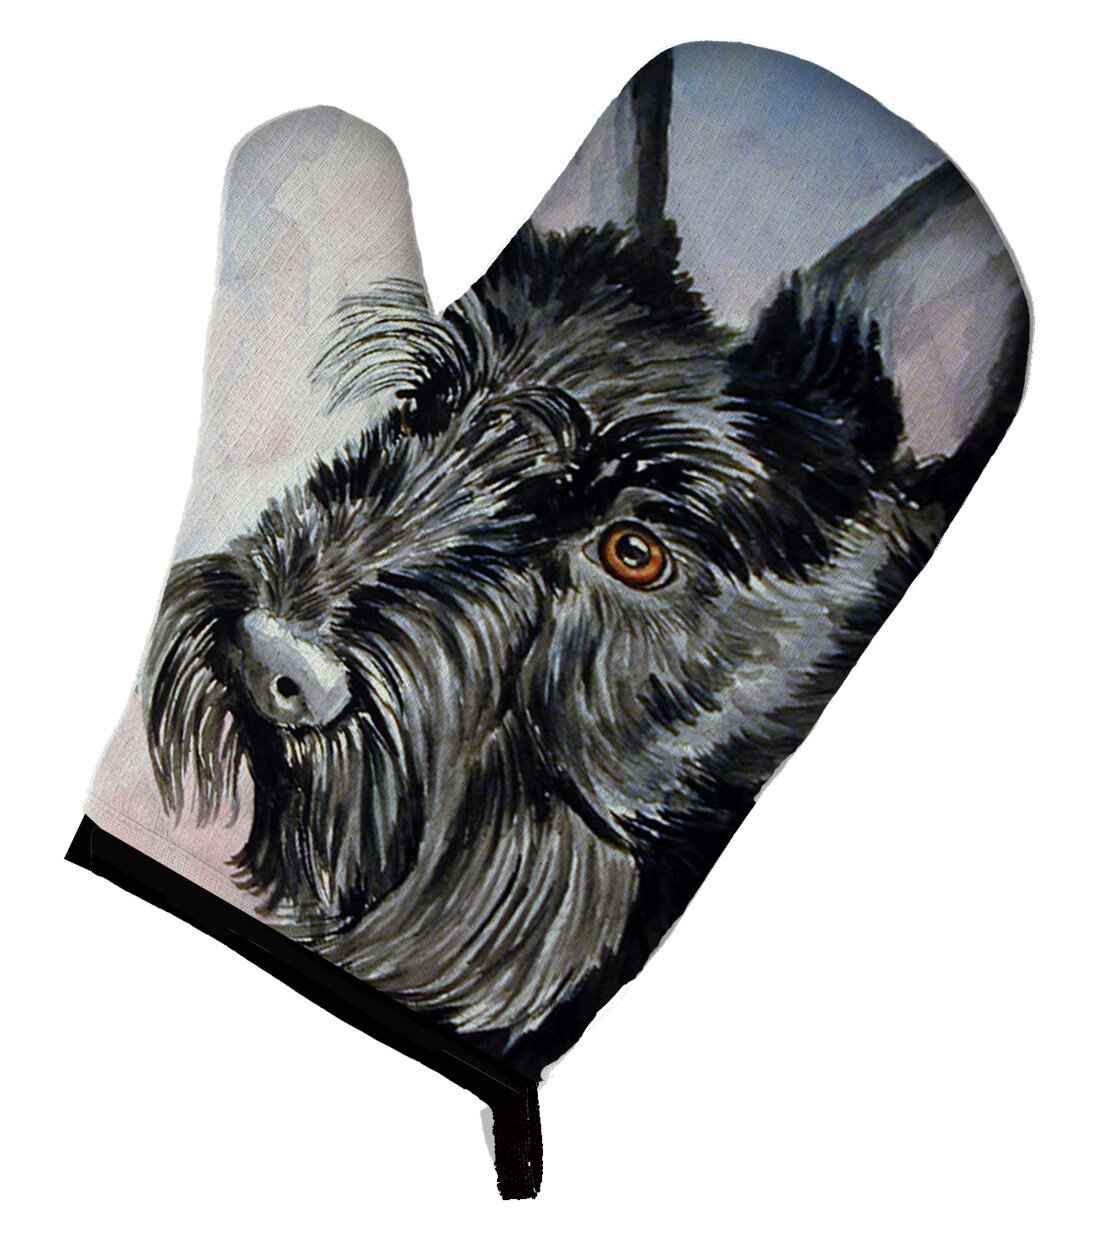 East Urban Home Scottish Terrier Oven Mitt Wayfair